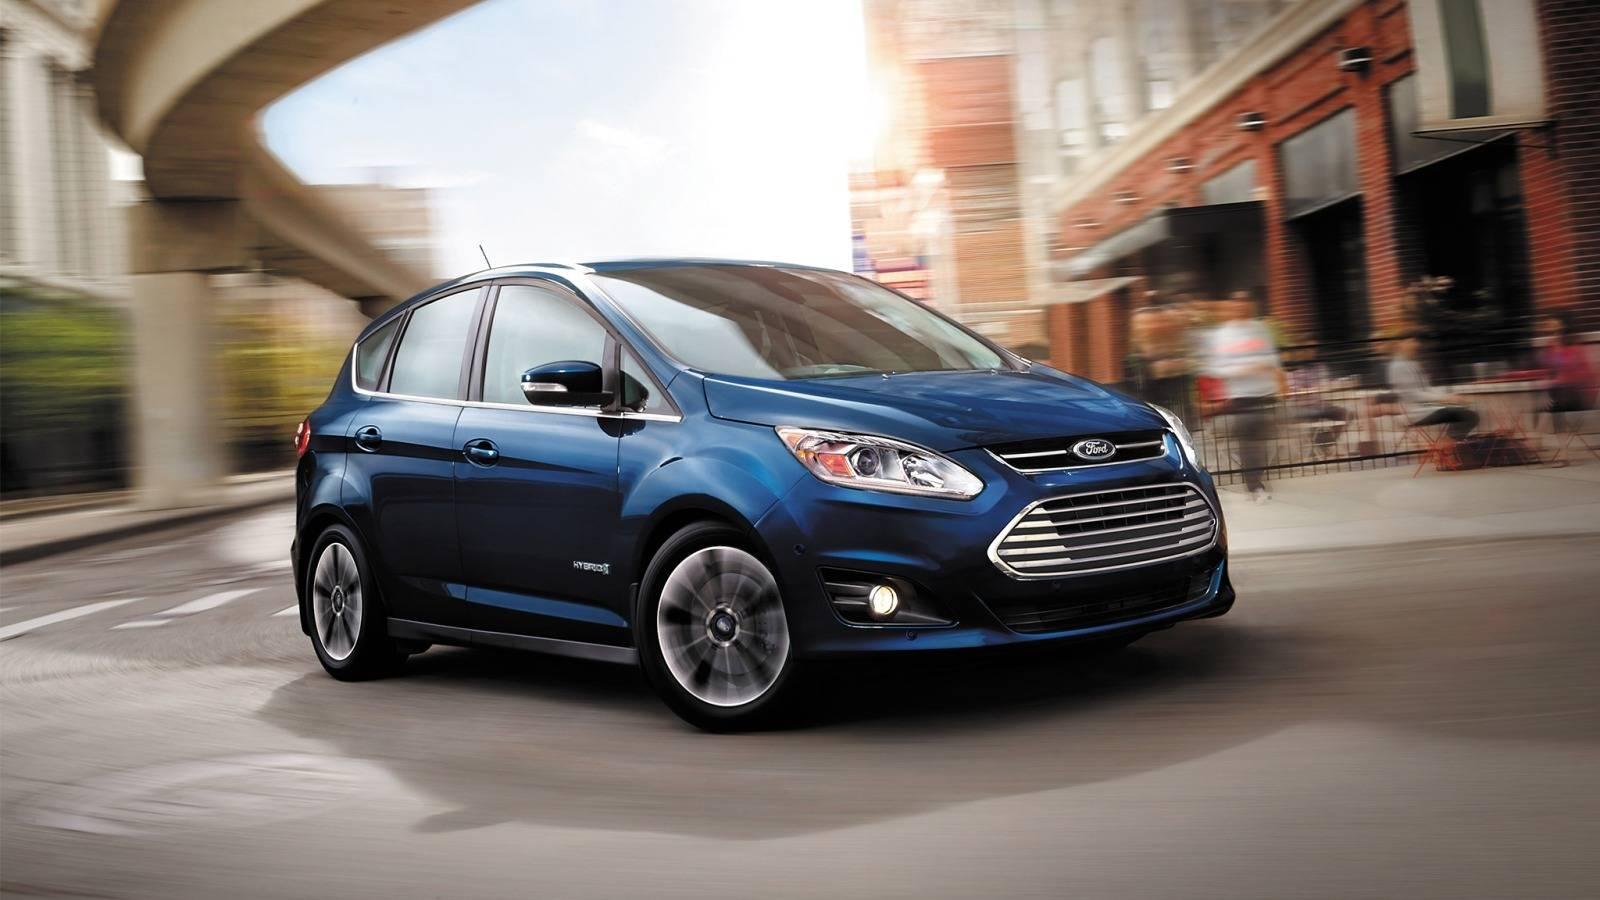 Ford C-Max in Goldsboro